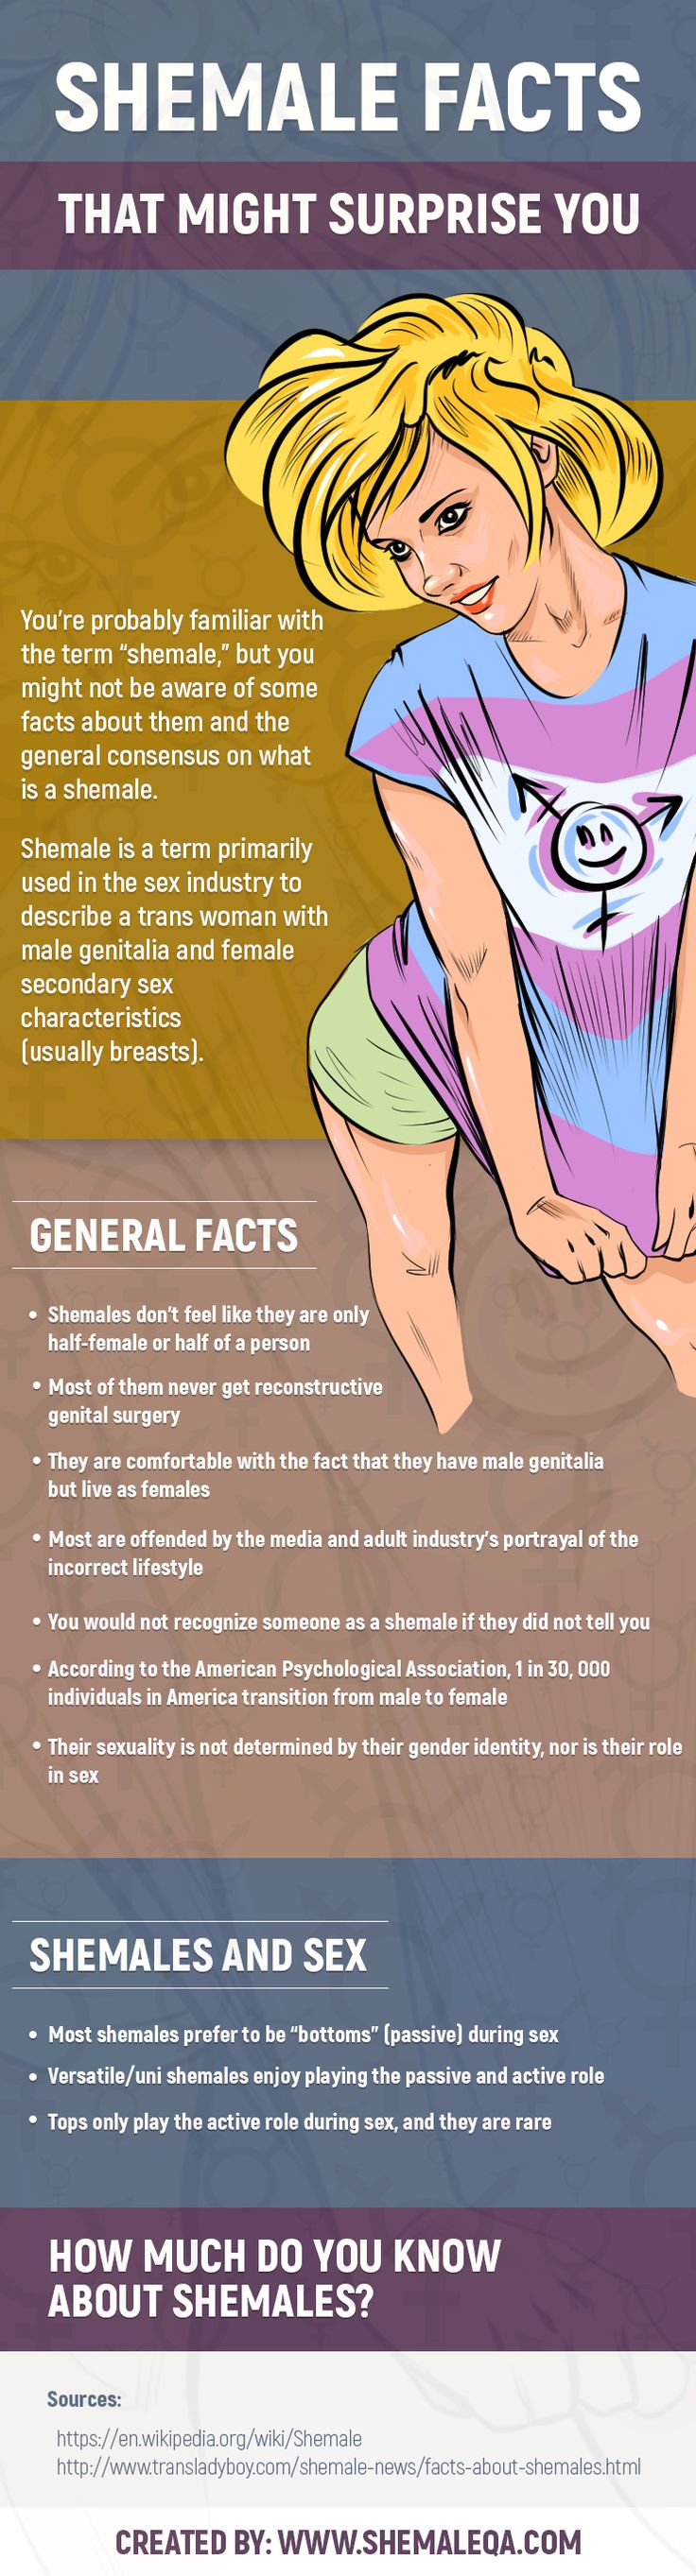 "You're probably familiar with the term ""shemale,"" but you might not be aware of some facts about them and the general consensus on what is a shemale.  Shemale is a term primarily used in the sex industry to describe a trans woman with male genitalia and female secondary sex characteristics (usually breasts)."